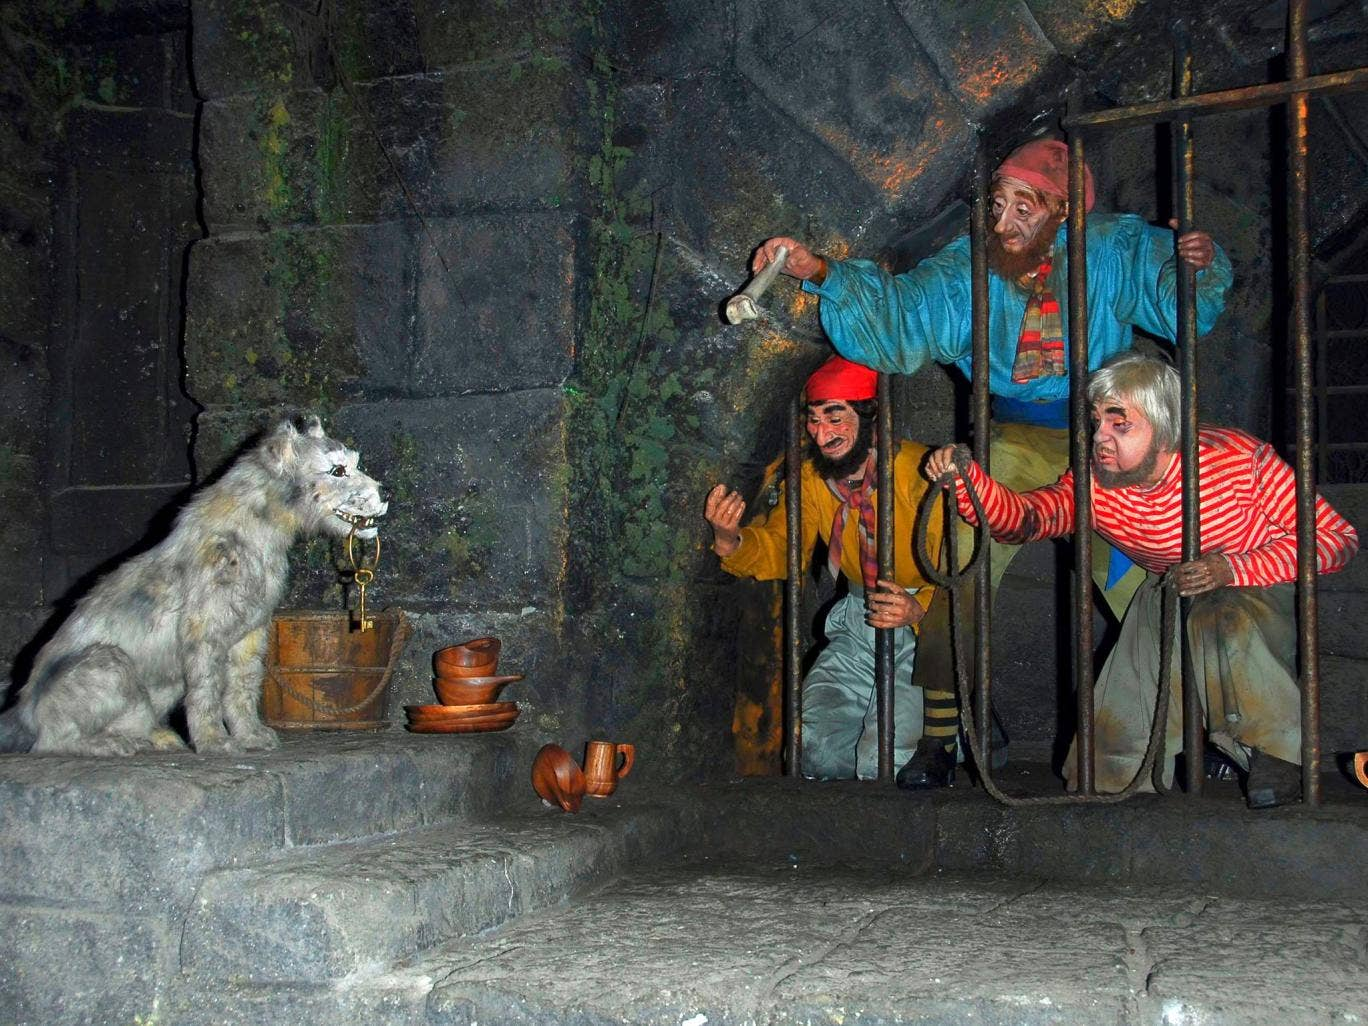 Figures seen on the Pirates of the Caribbean ride